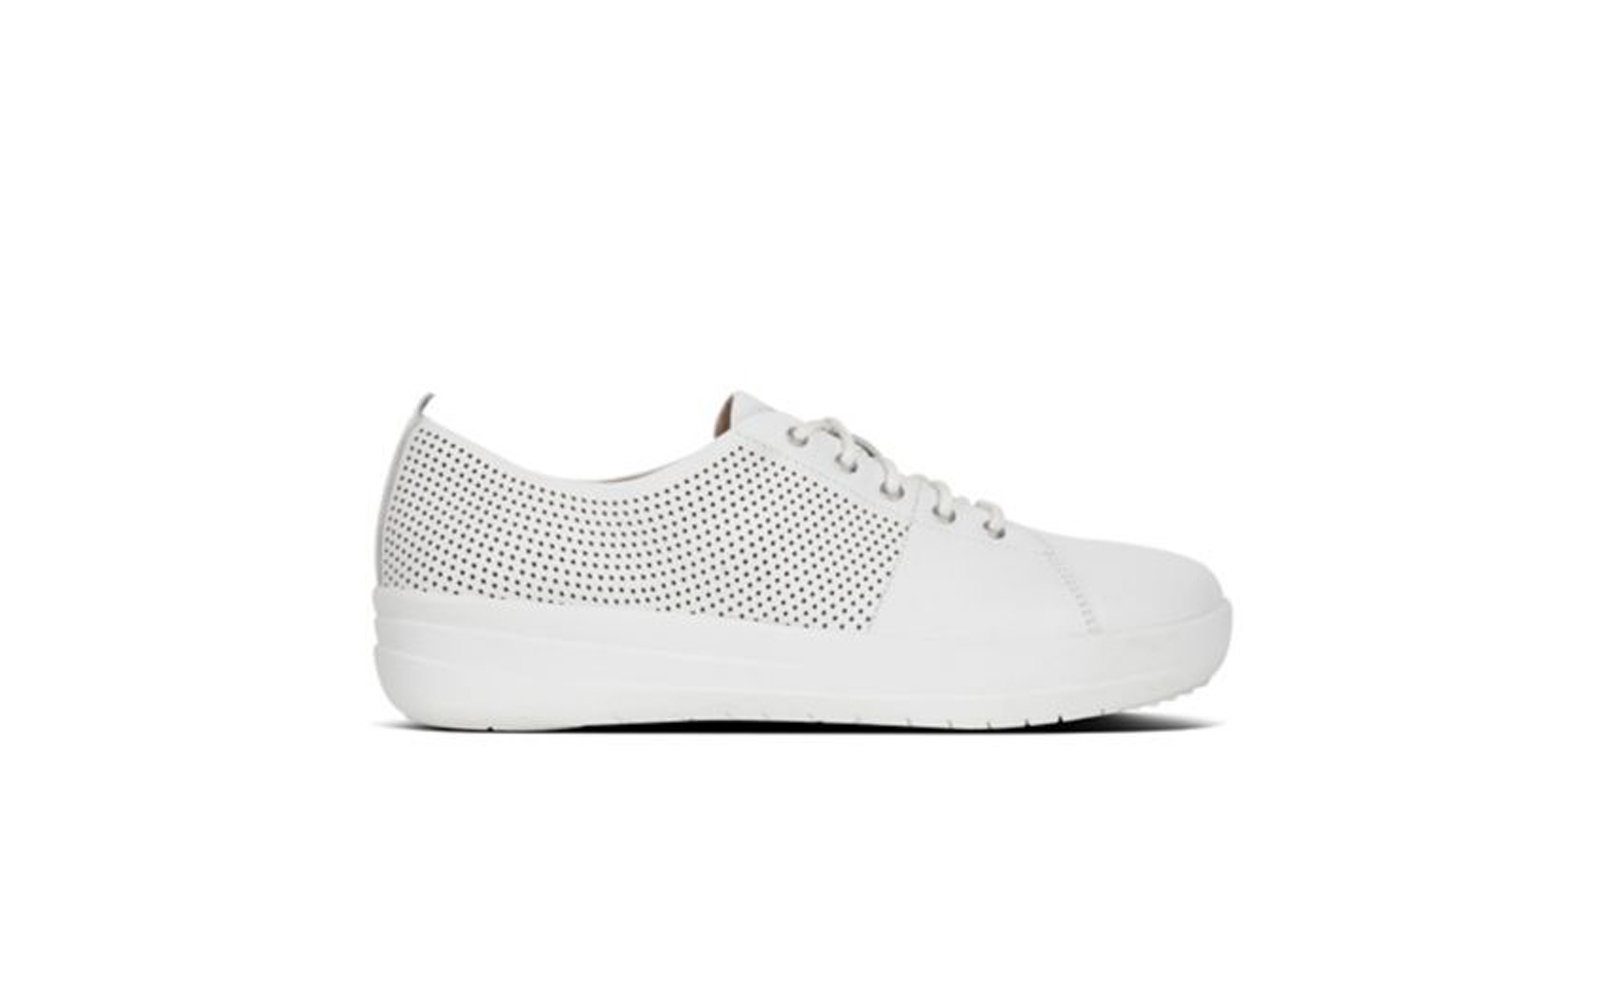 FitFlop F-Sporty TM Scoop-Cut Perf Leather Sneakers